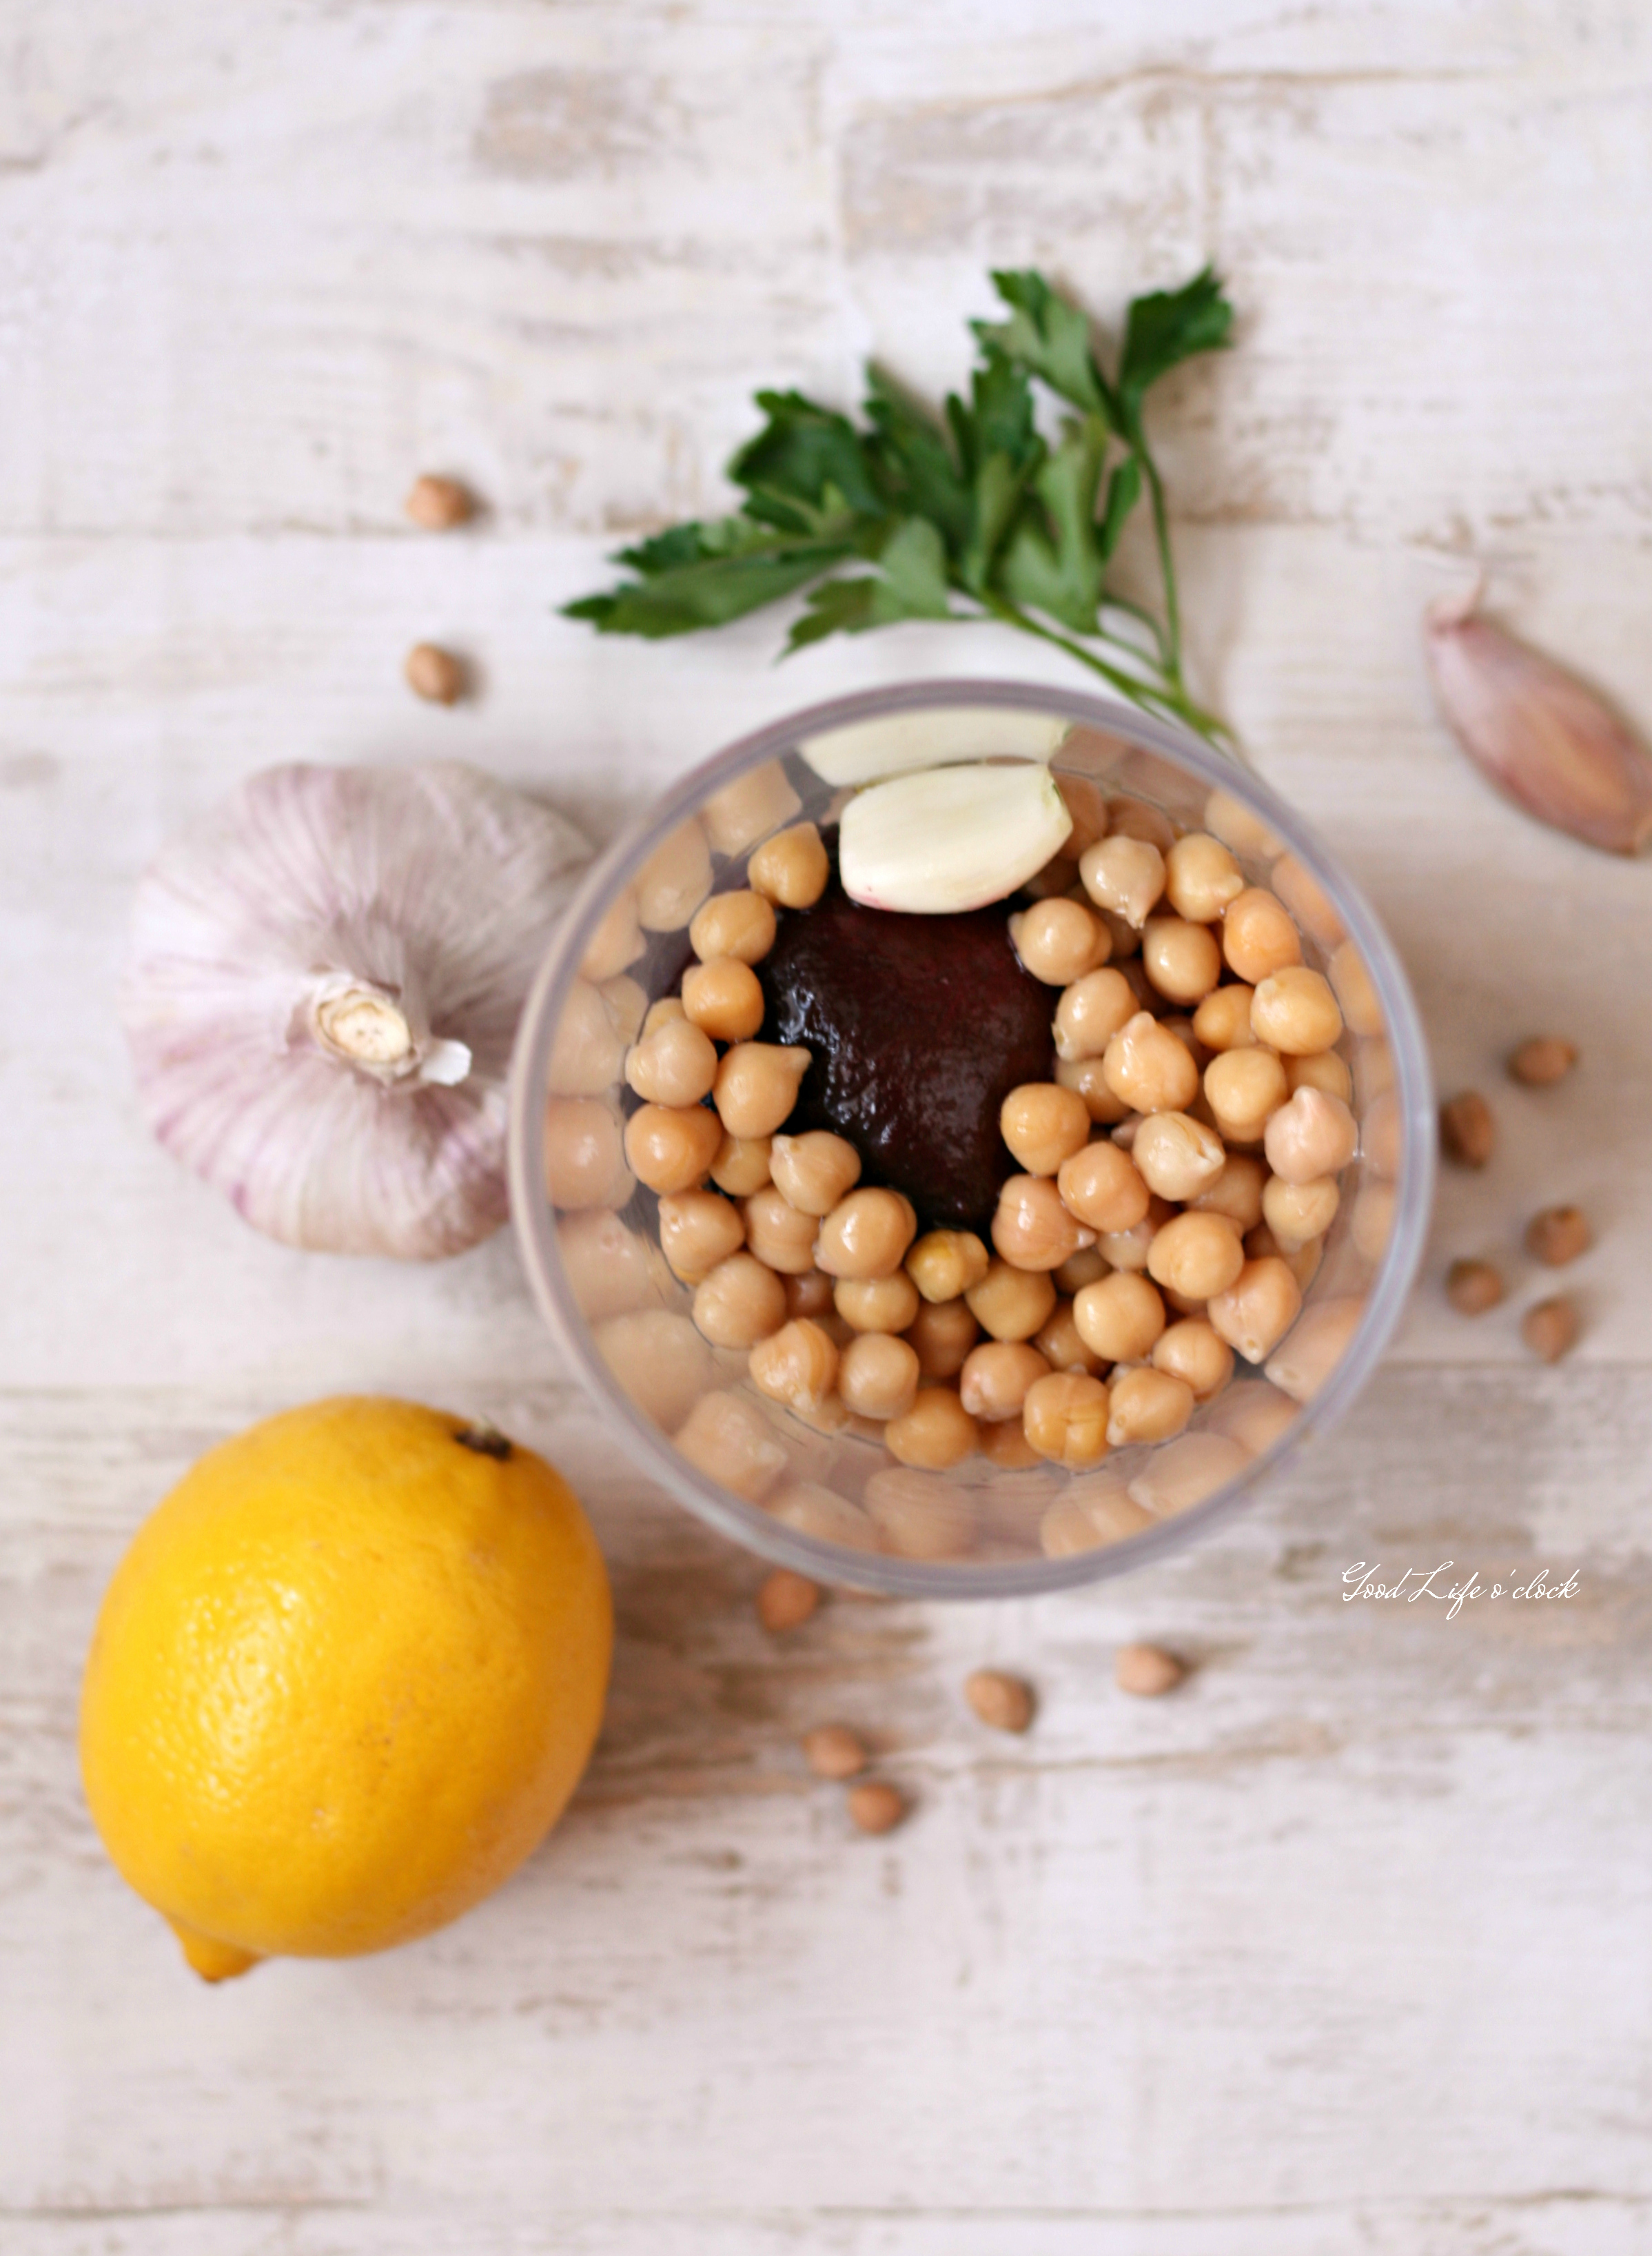 hummus-ingredients-gloc-a